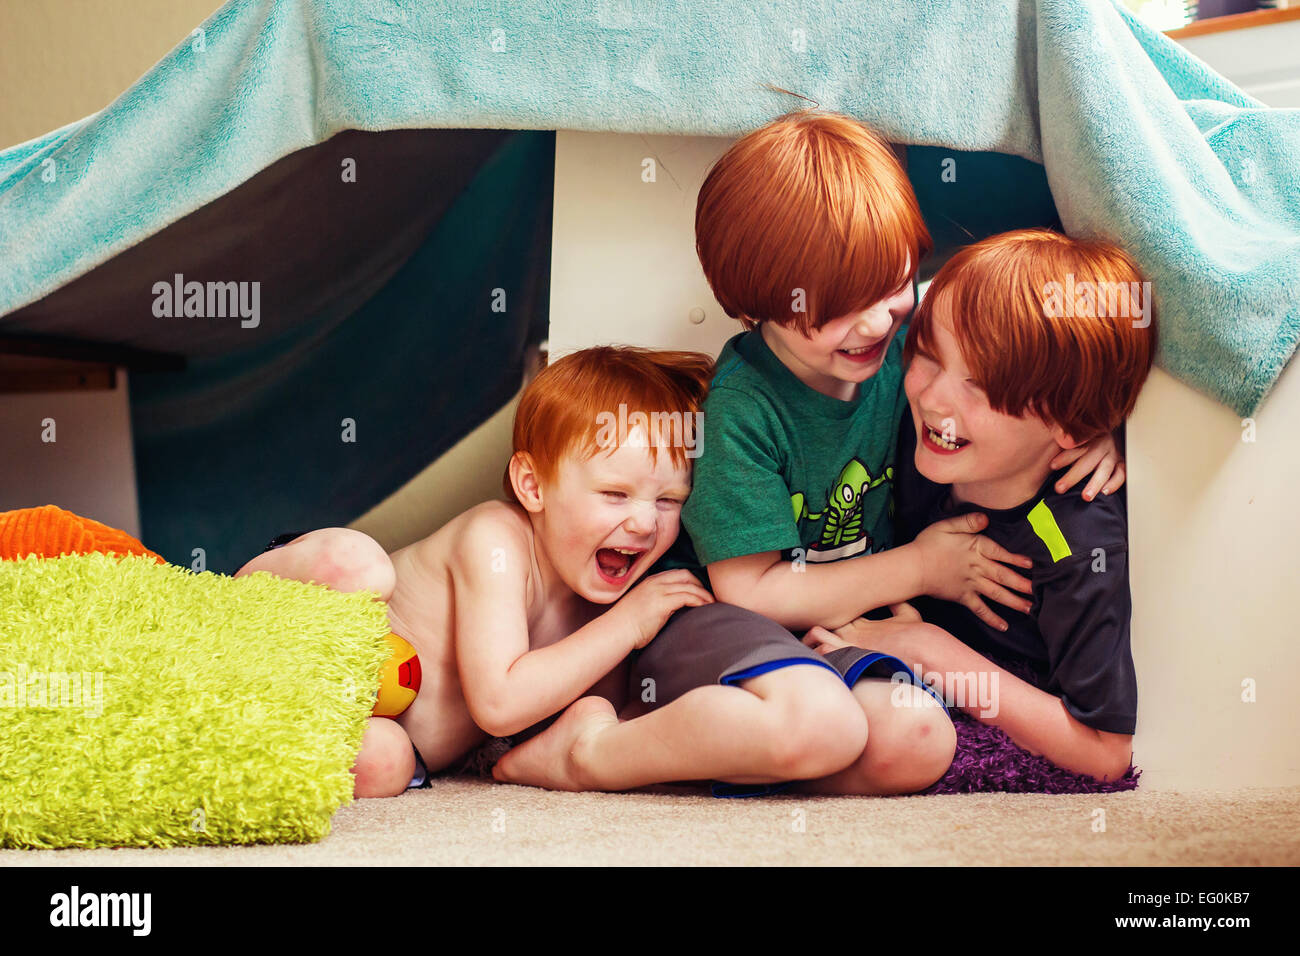 Three boys sitting in a den tickling each other - Stock Image